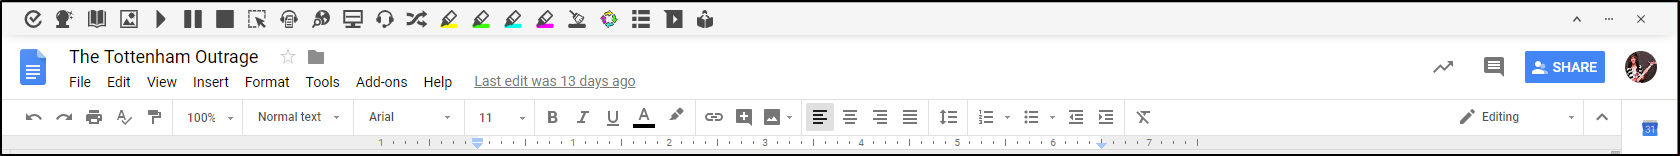 Read&Write for Google Chrome Google Docs/Slides Toolbar